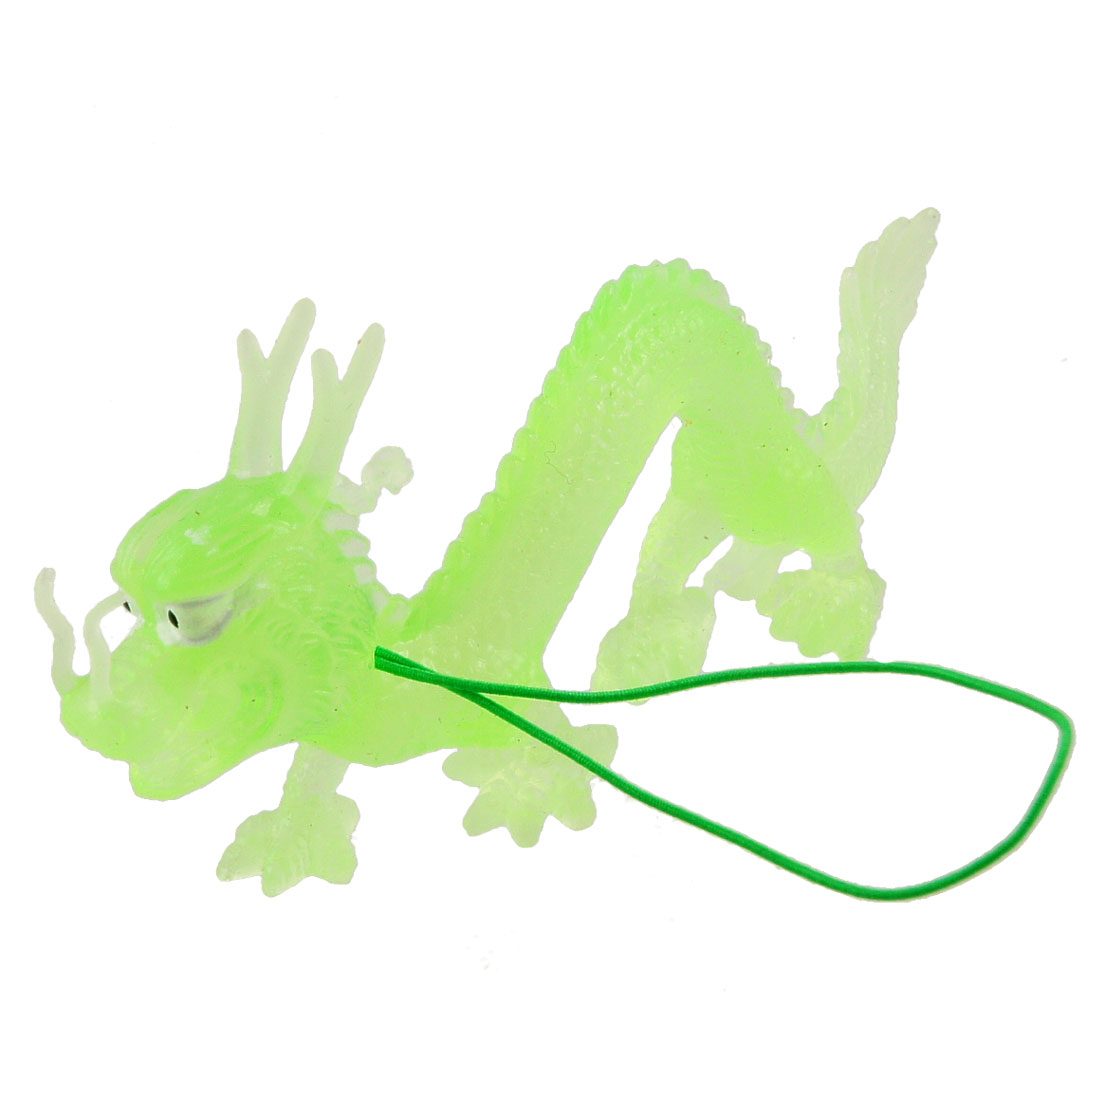 "4.7"" Long Soft Green Silicone Emulational Dragon Shaped Toy Decor Pendant"